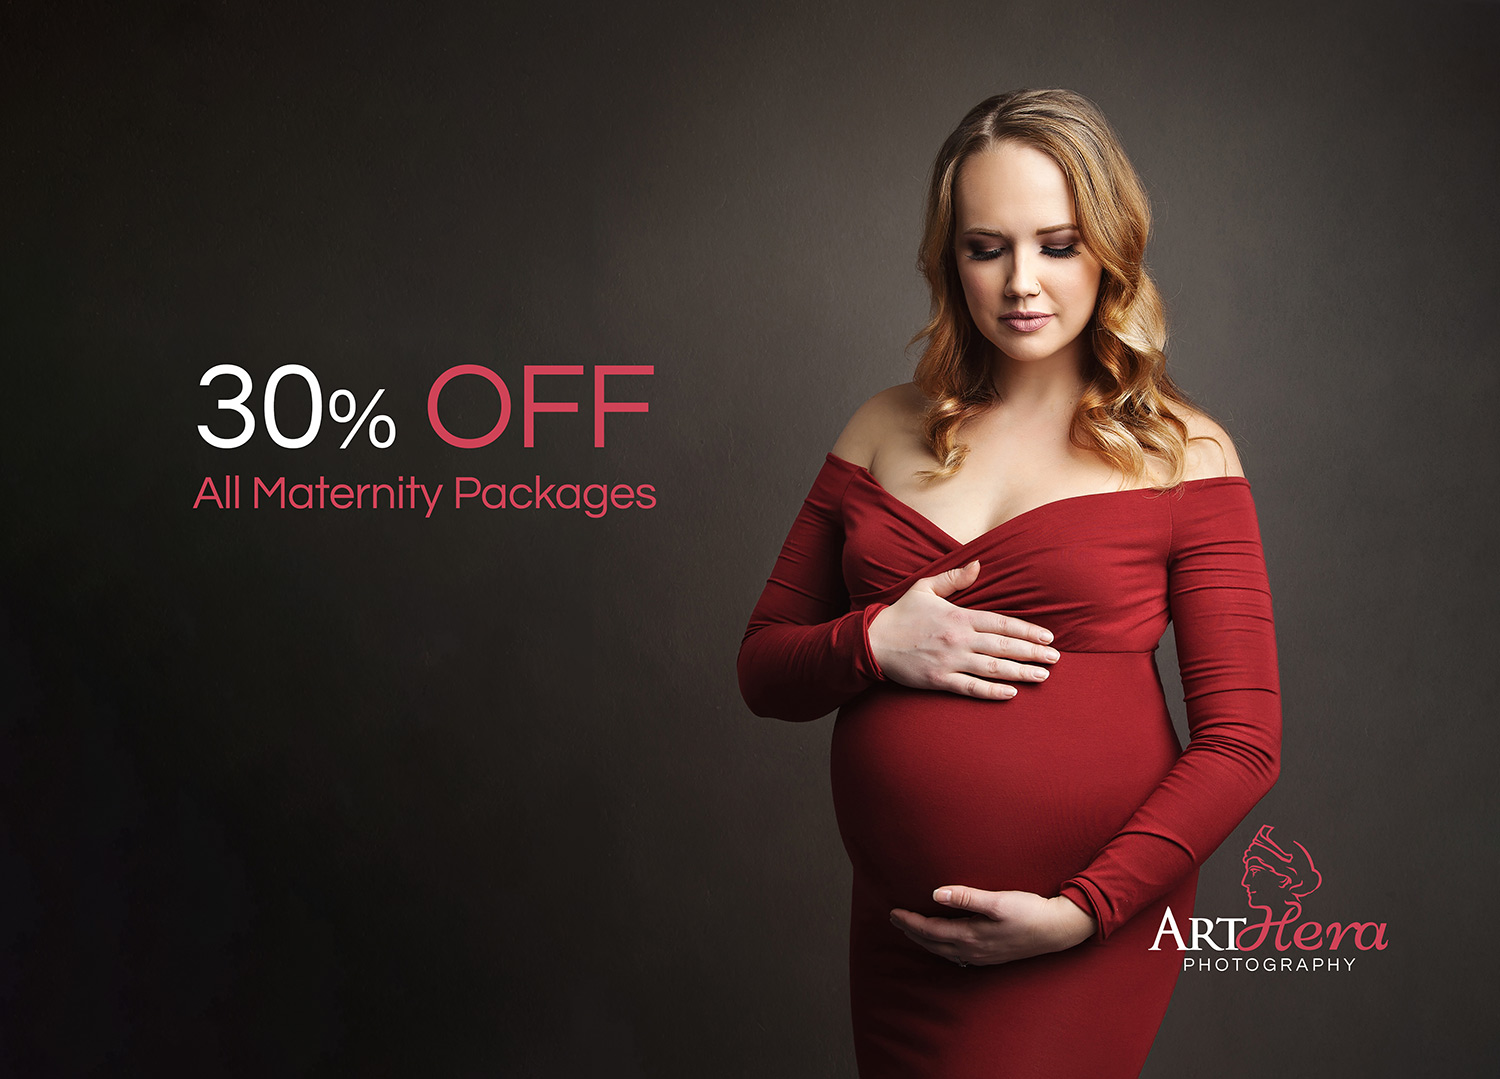 30% OFF on All Maternity Packages – 2018